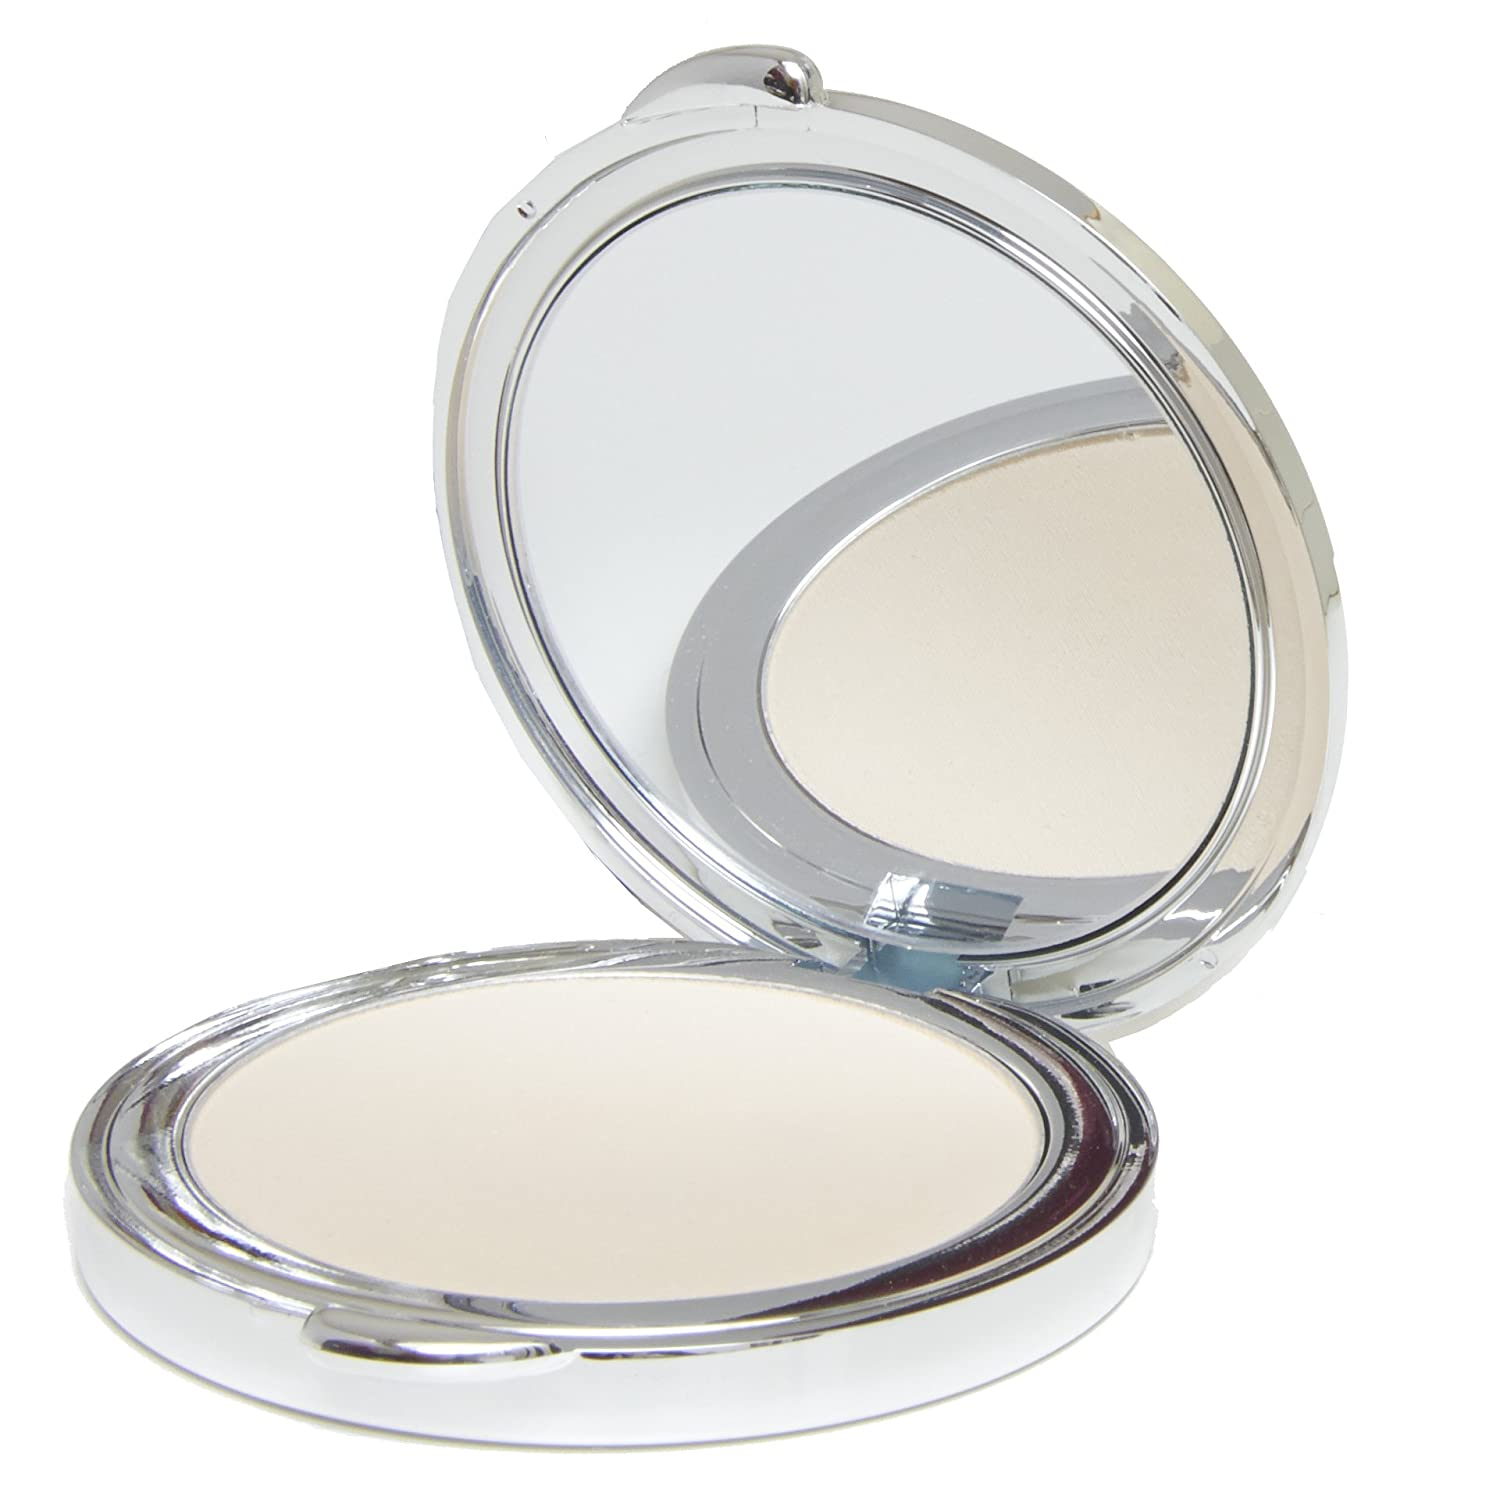 La Bella Donna Compressed Mineral Foundation | Marta 10g